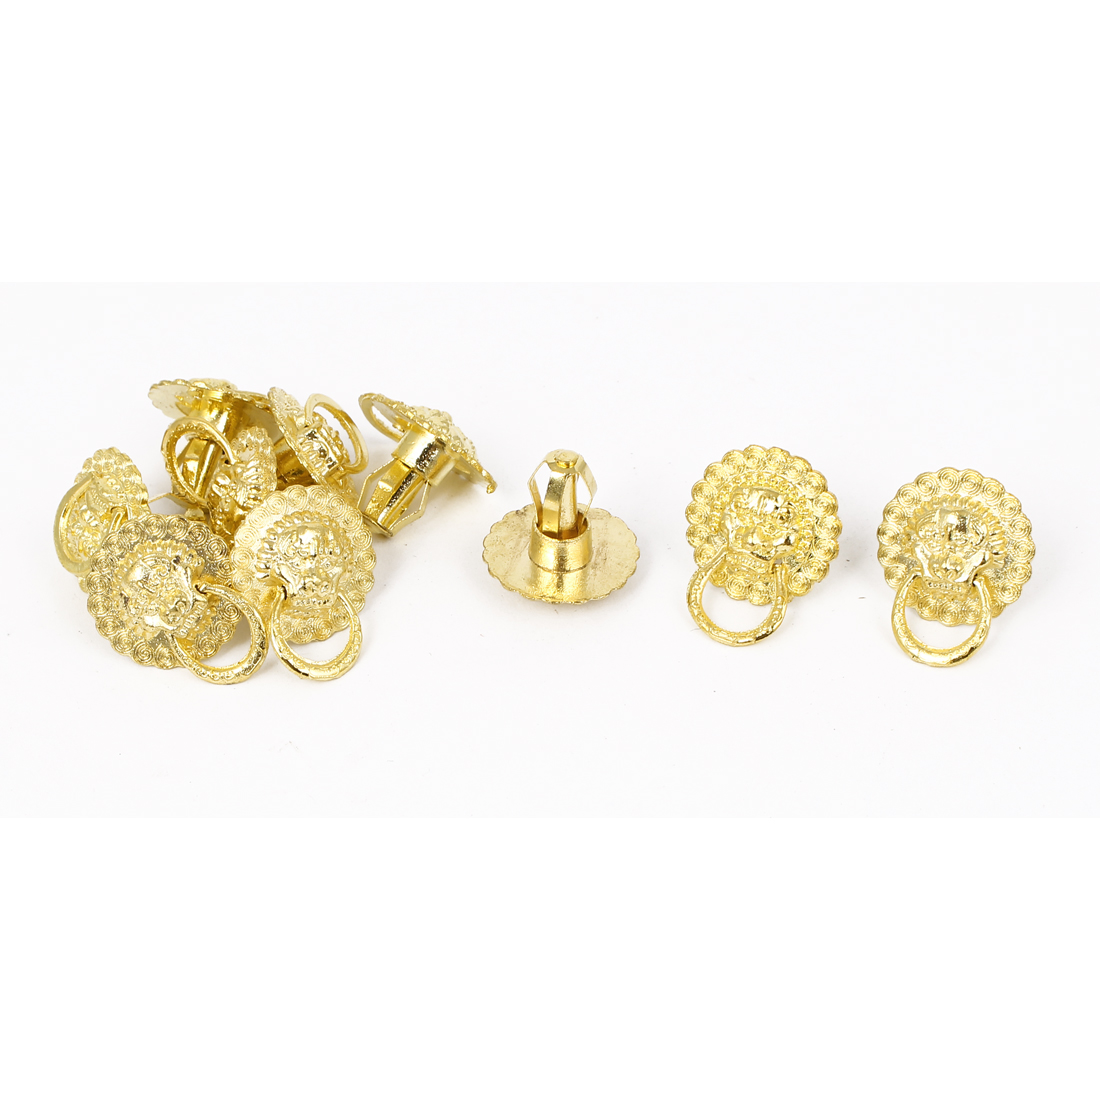 Lion Head Design Drawer Jewelry Box Ring Pull Handle Knob Gold Tone 10pcs